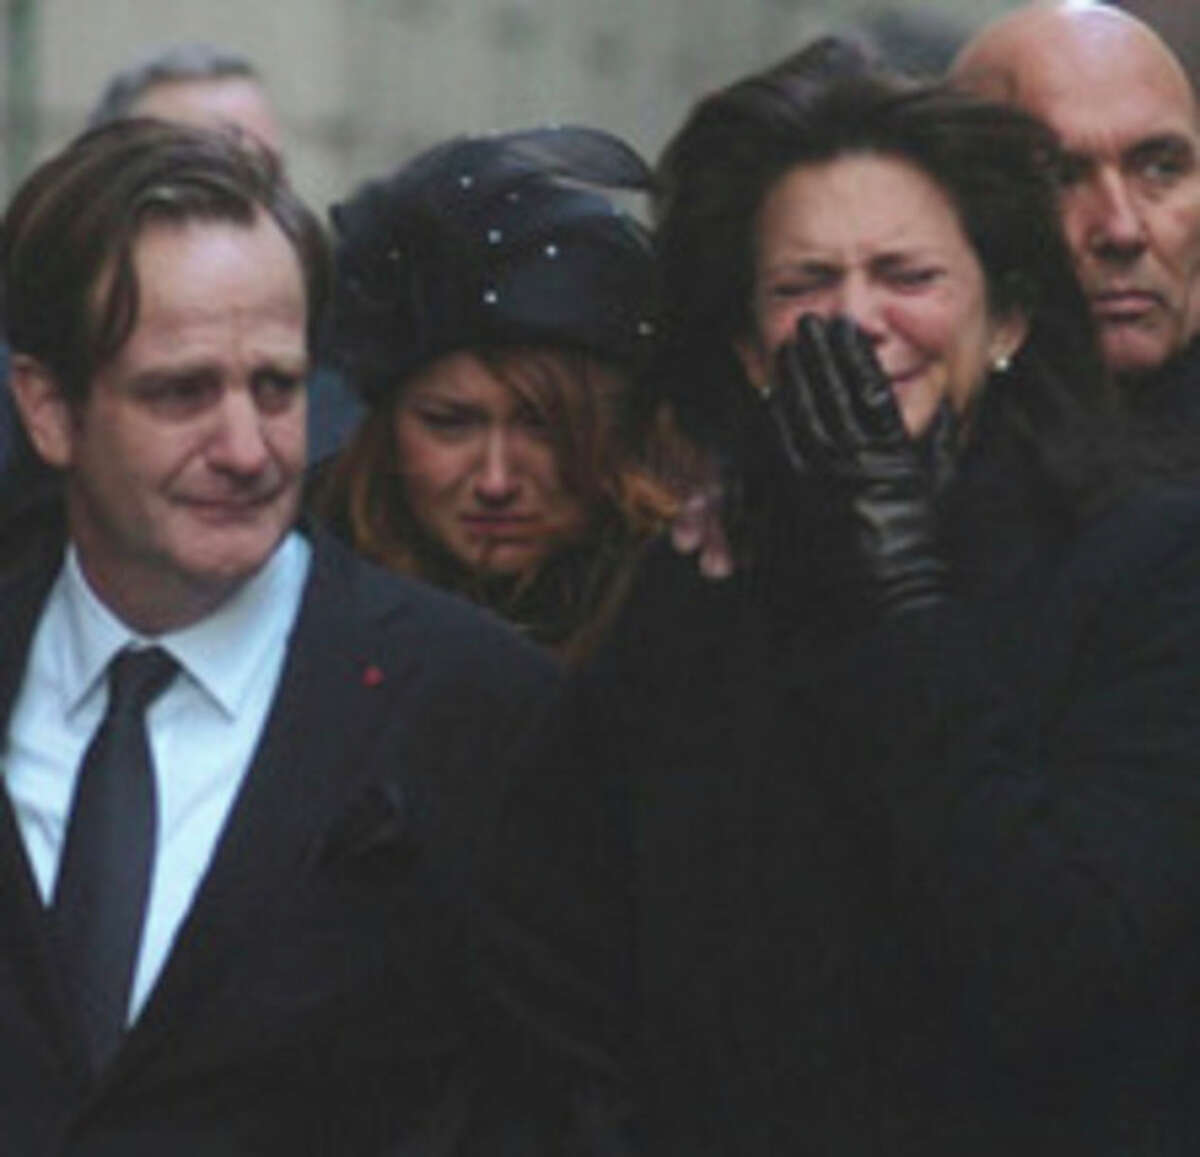 Matthew Badger, left, and Madonna Badger, the parents of three children that were killed in a fire on Christmas Day, react as the children's coffins are carried into a church during their funeral in Manhattean Jan. 5. Hour photo / Erik Trautmann